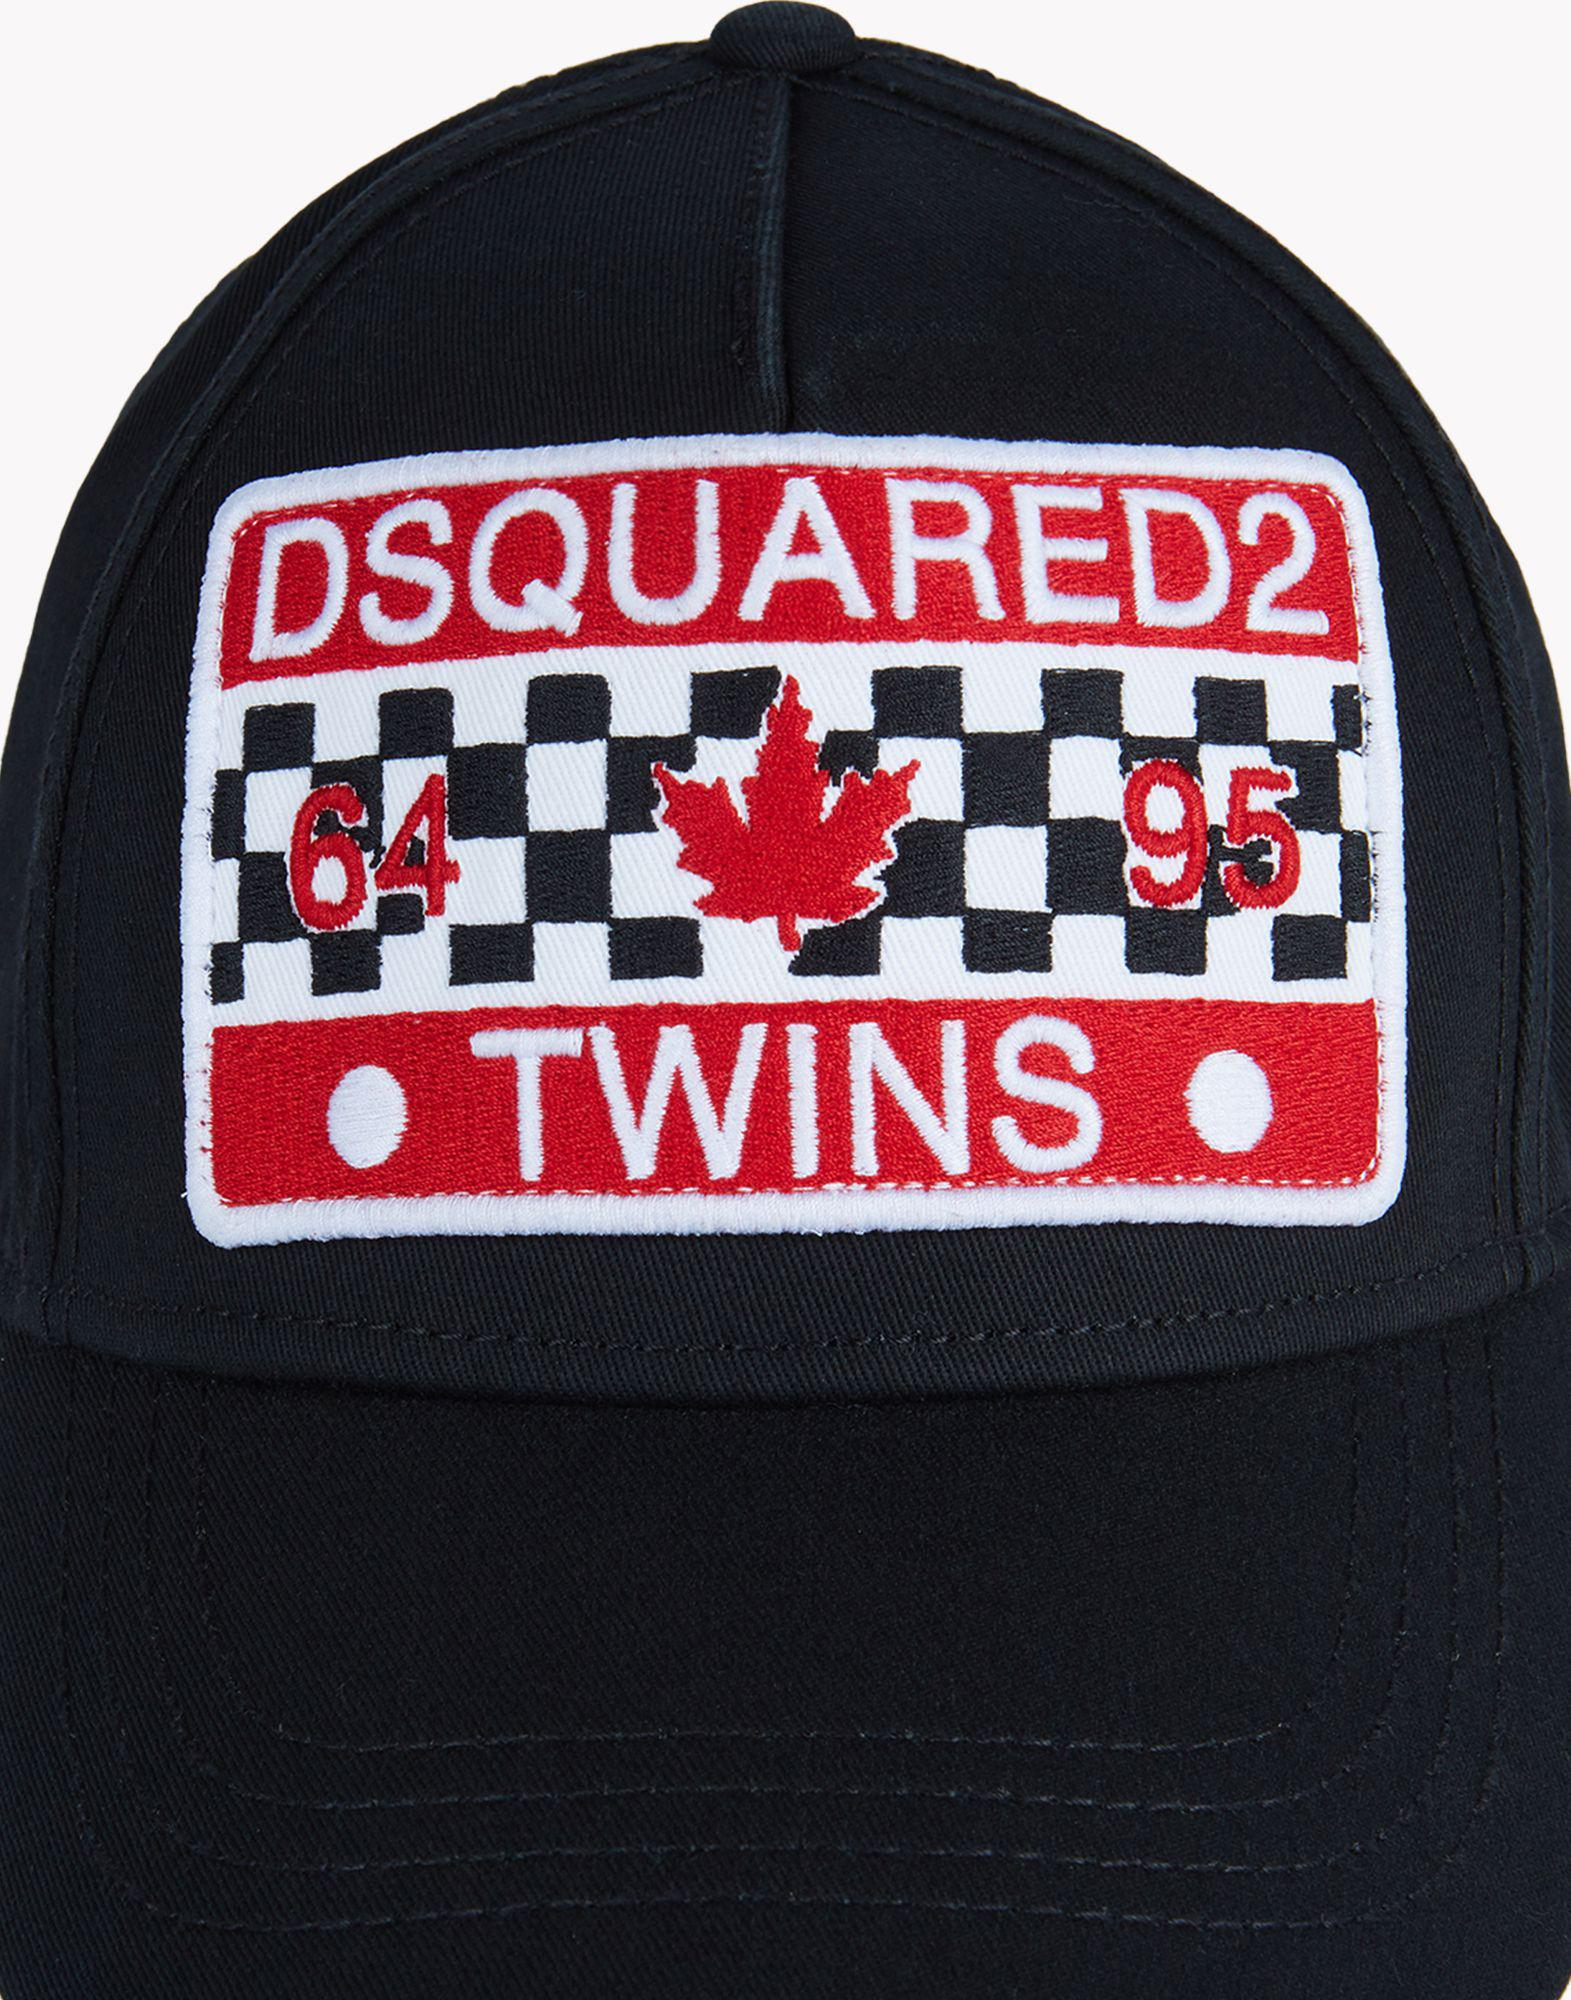 fdc9456b68d67 DSquared² D2 Twins Baseball Cap in Black for Men - Lyst